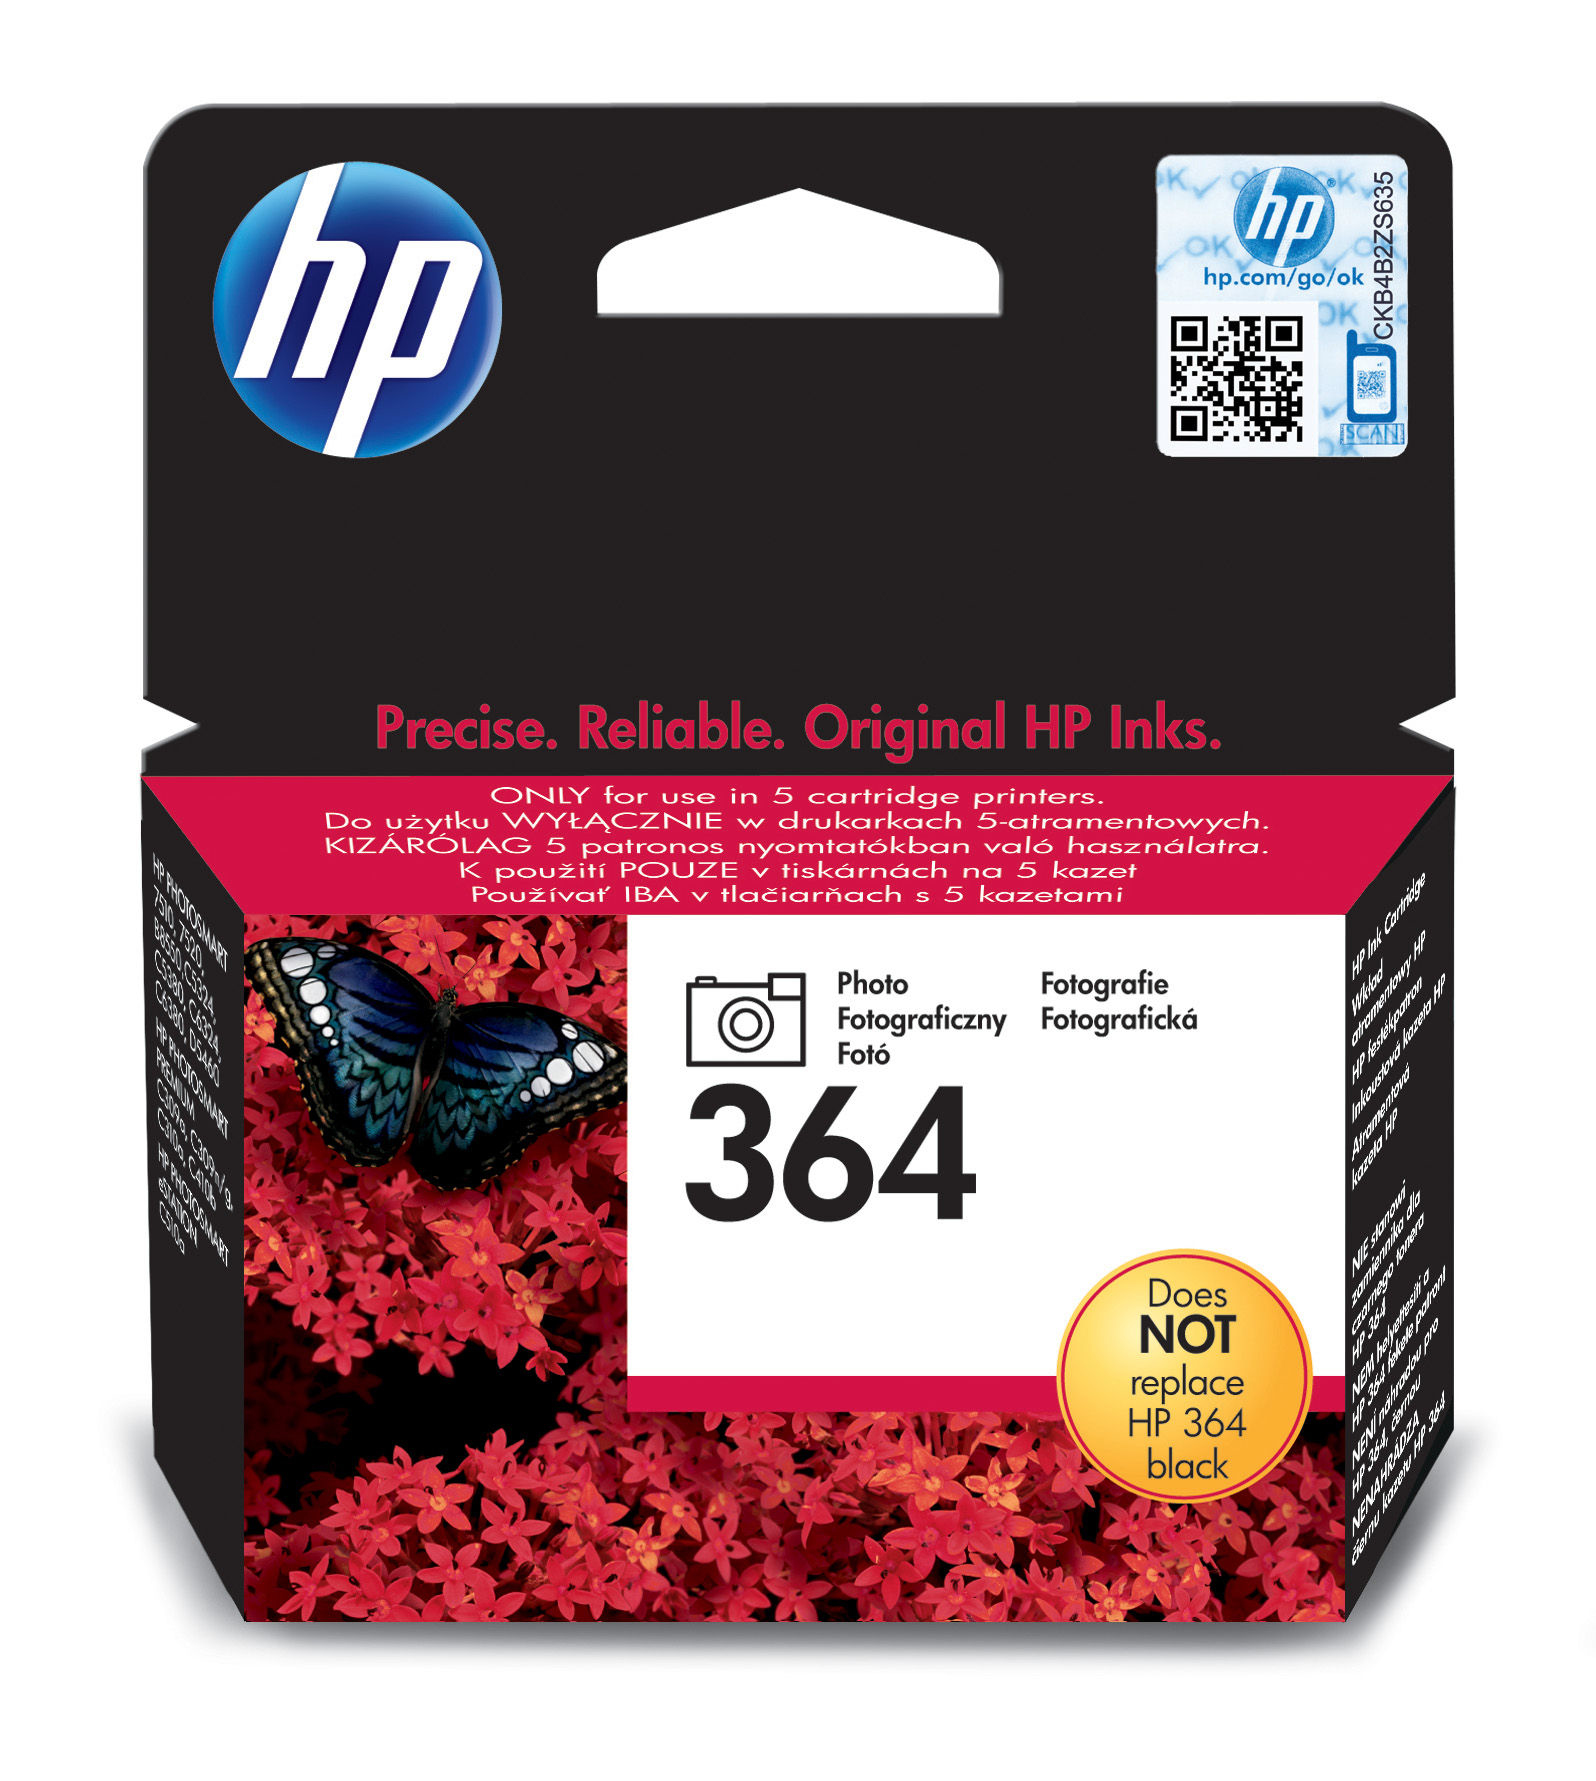 Blue Box Remanufactured HP CB317EE (364) Photo Black Ink Cartridge CB317EE - rem01